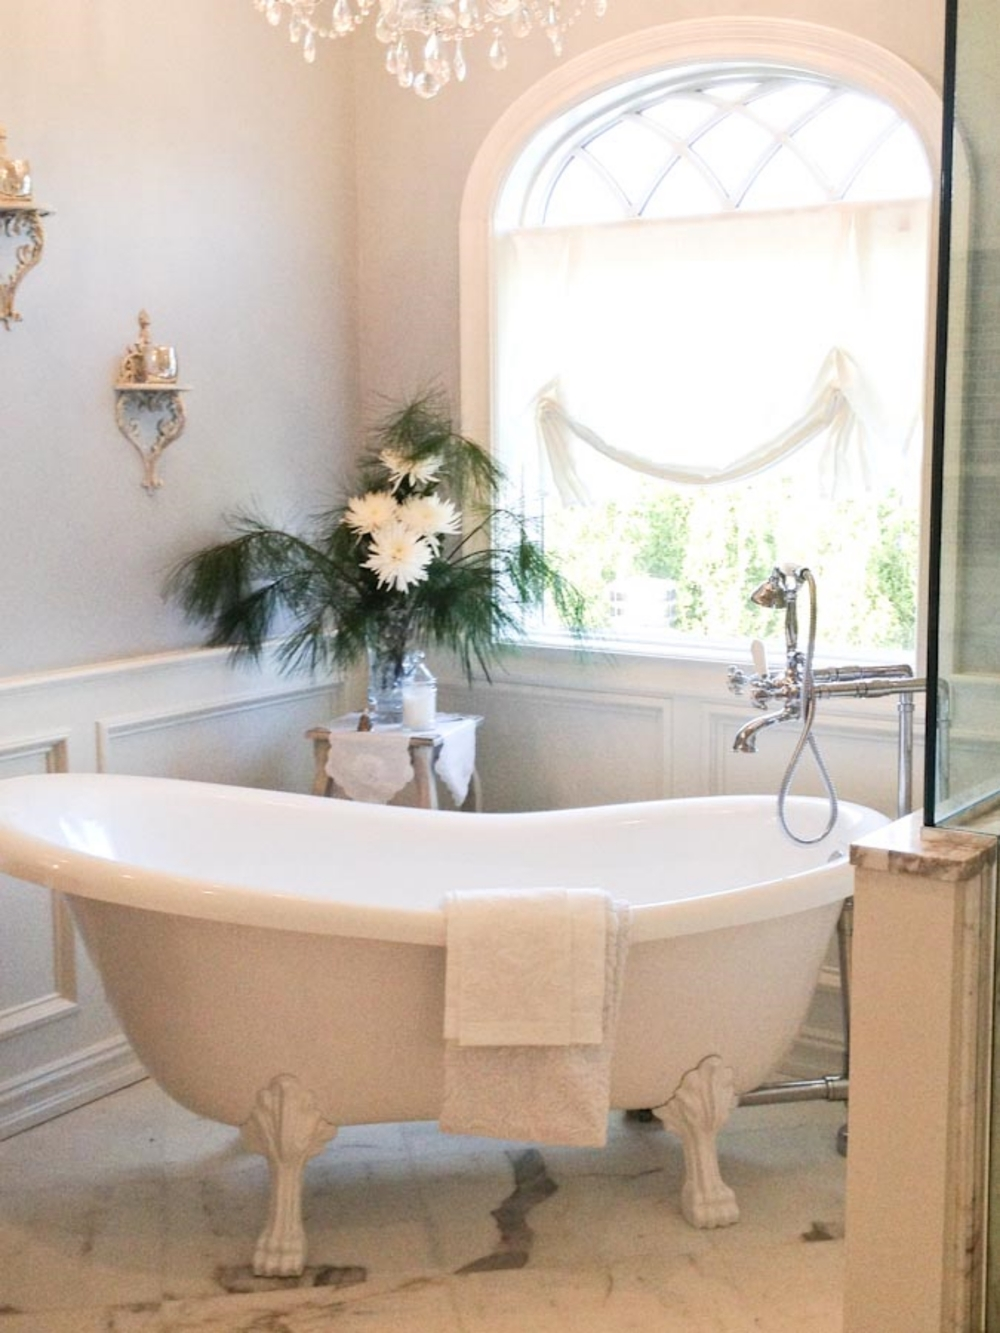 angelo-bathtub-102.jpg